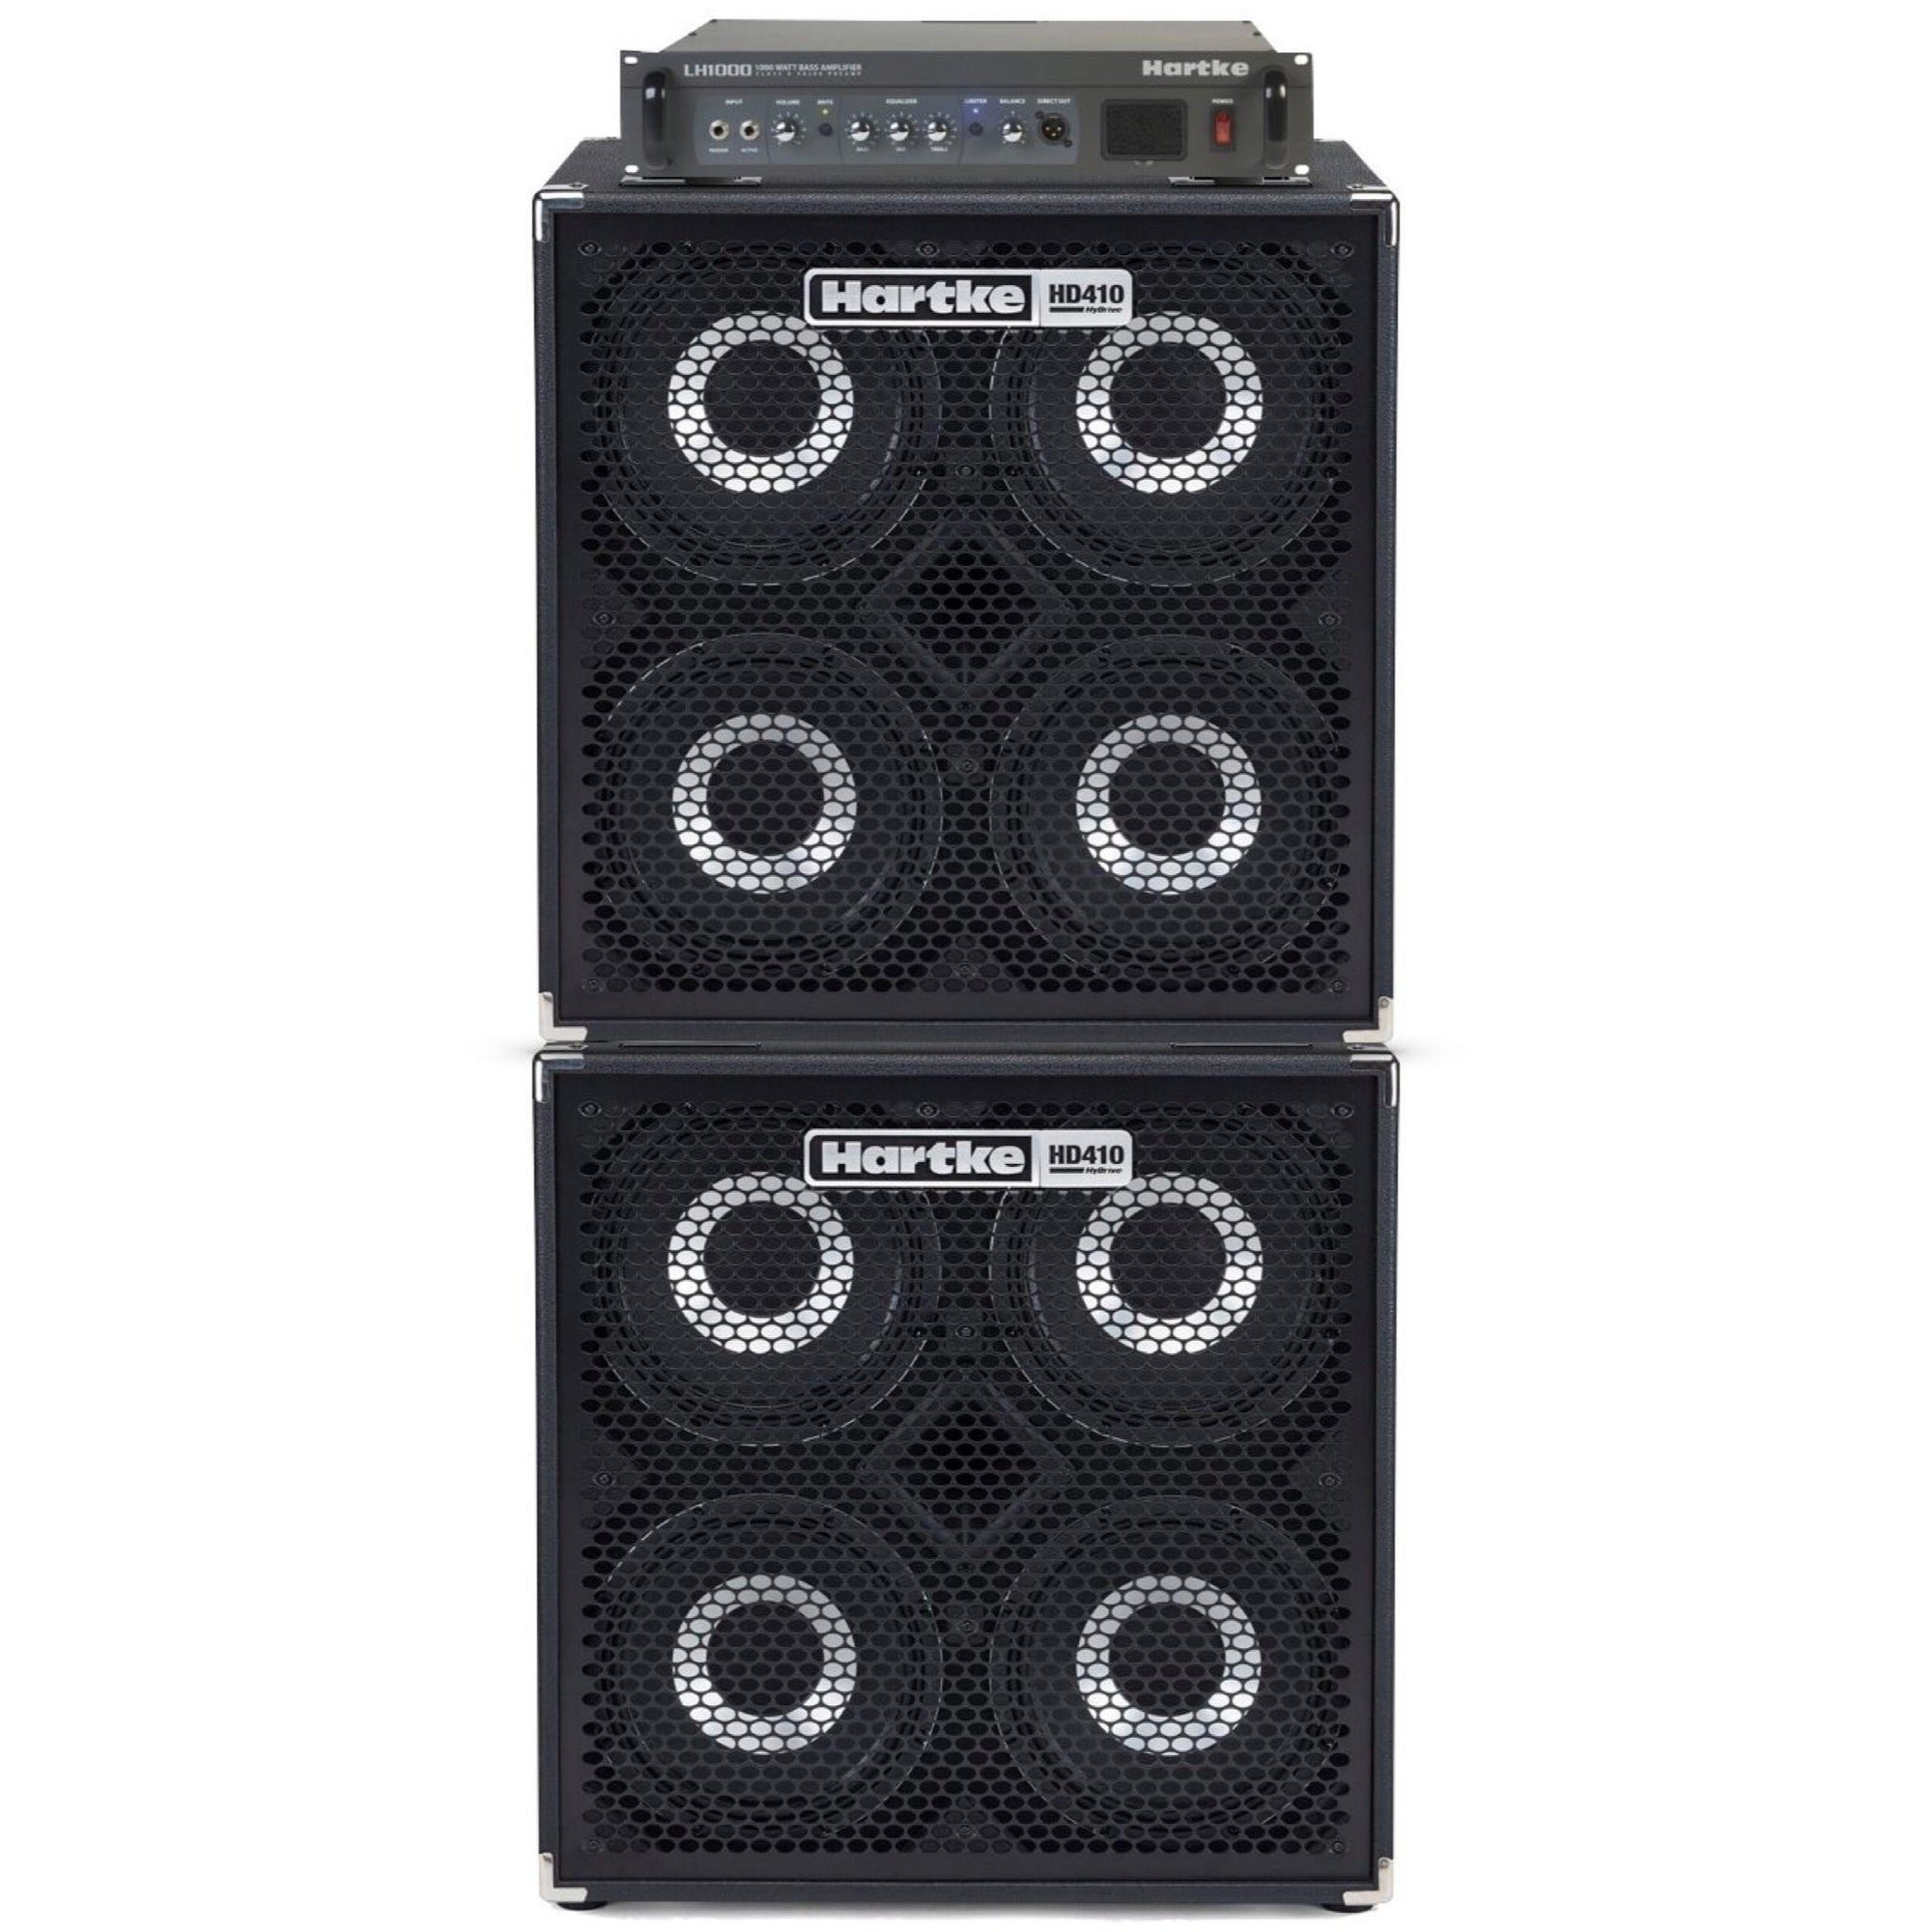 Hartke LH1000 Bass Head with Dual HD410 Bass Cabinet Full Stack Pack